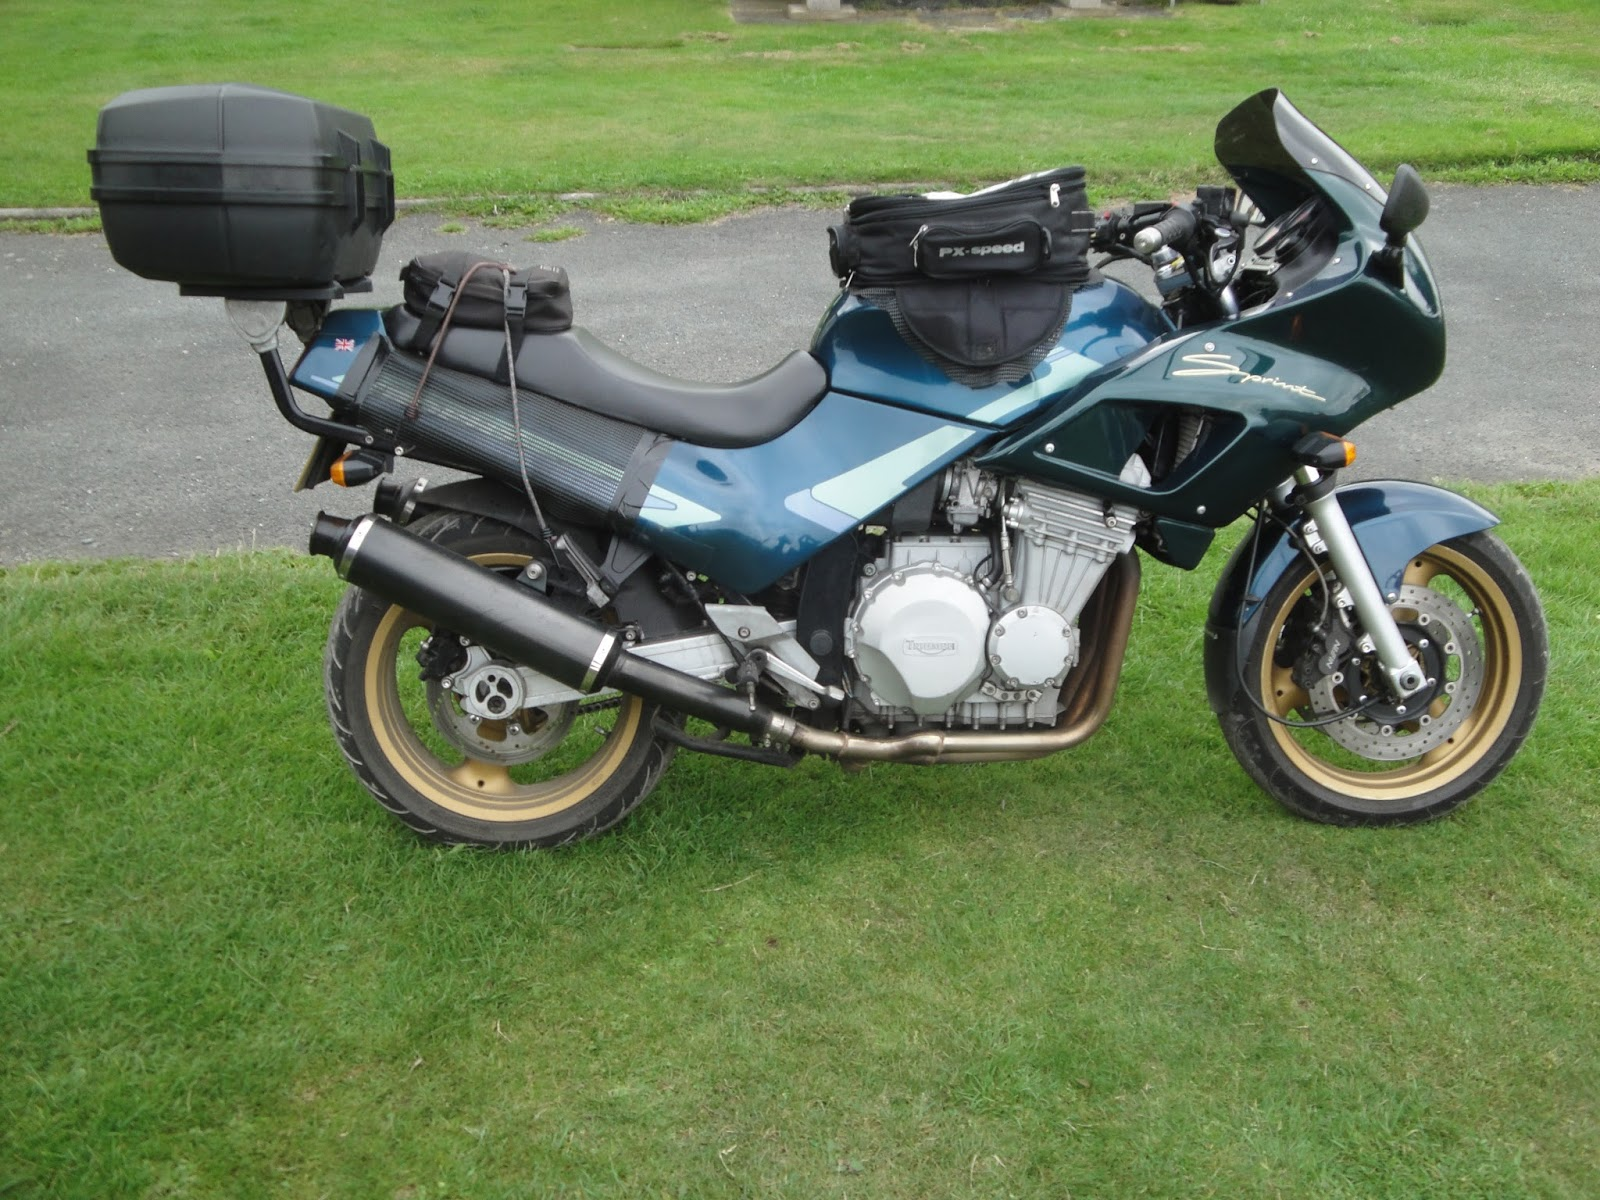 Triumph Trophy 1200 (reduced effect) #10